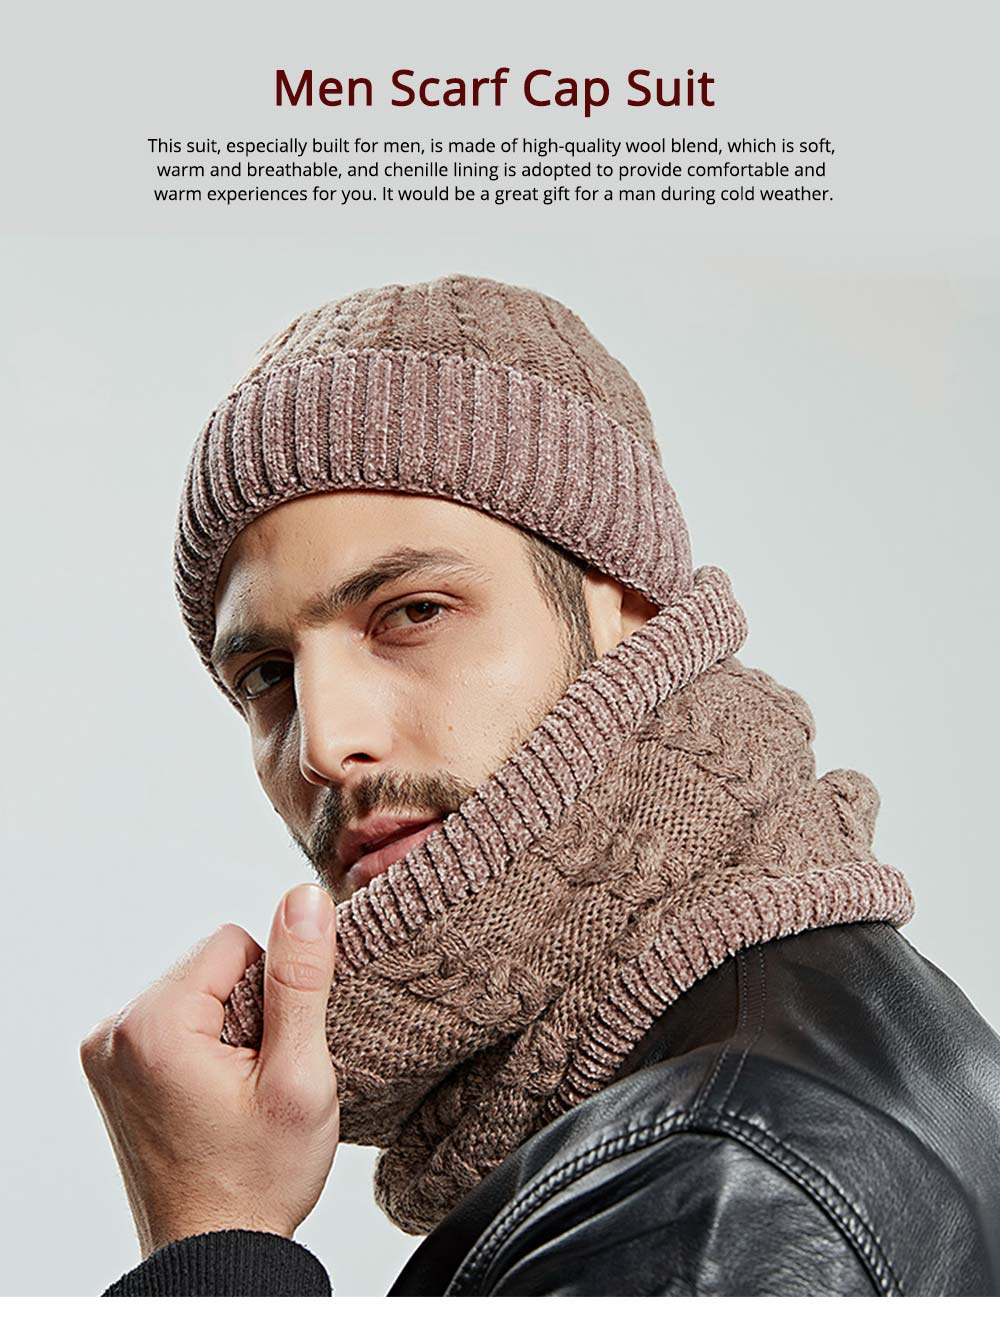 Ultra-soft Knit Beanie Cap and Circle Scarf, Minimalist Autumn Winter Men Scarf Cap Suit with Smooth Chenille 0